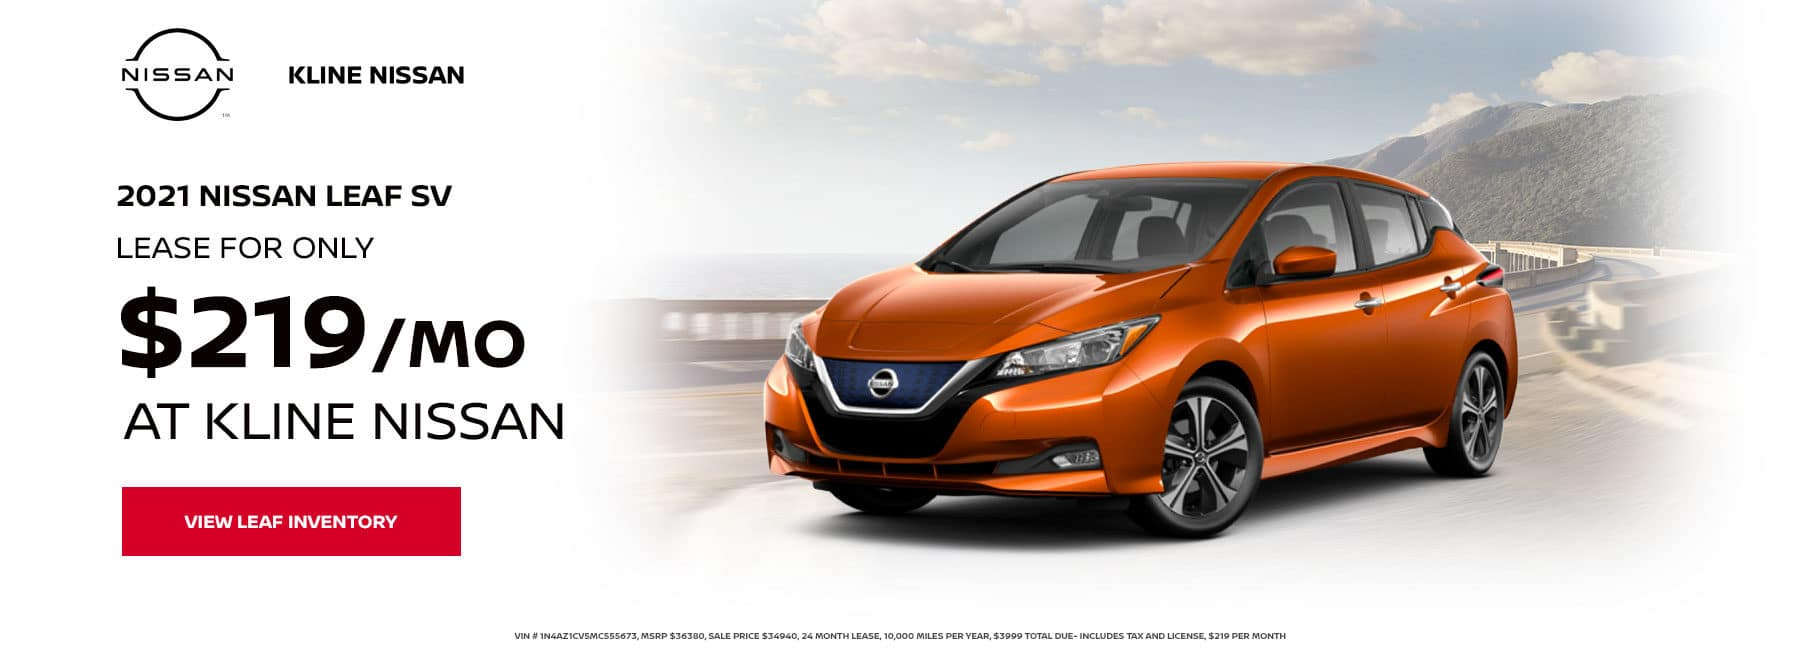 2021 Leaf SV, Lease for $219 Per month